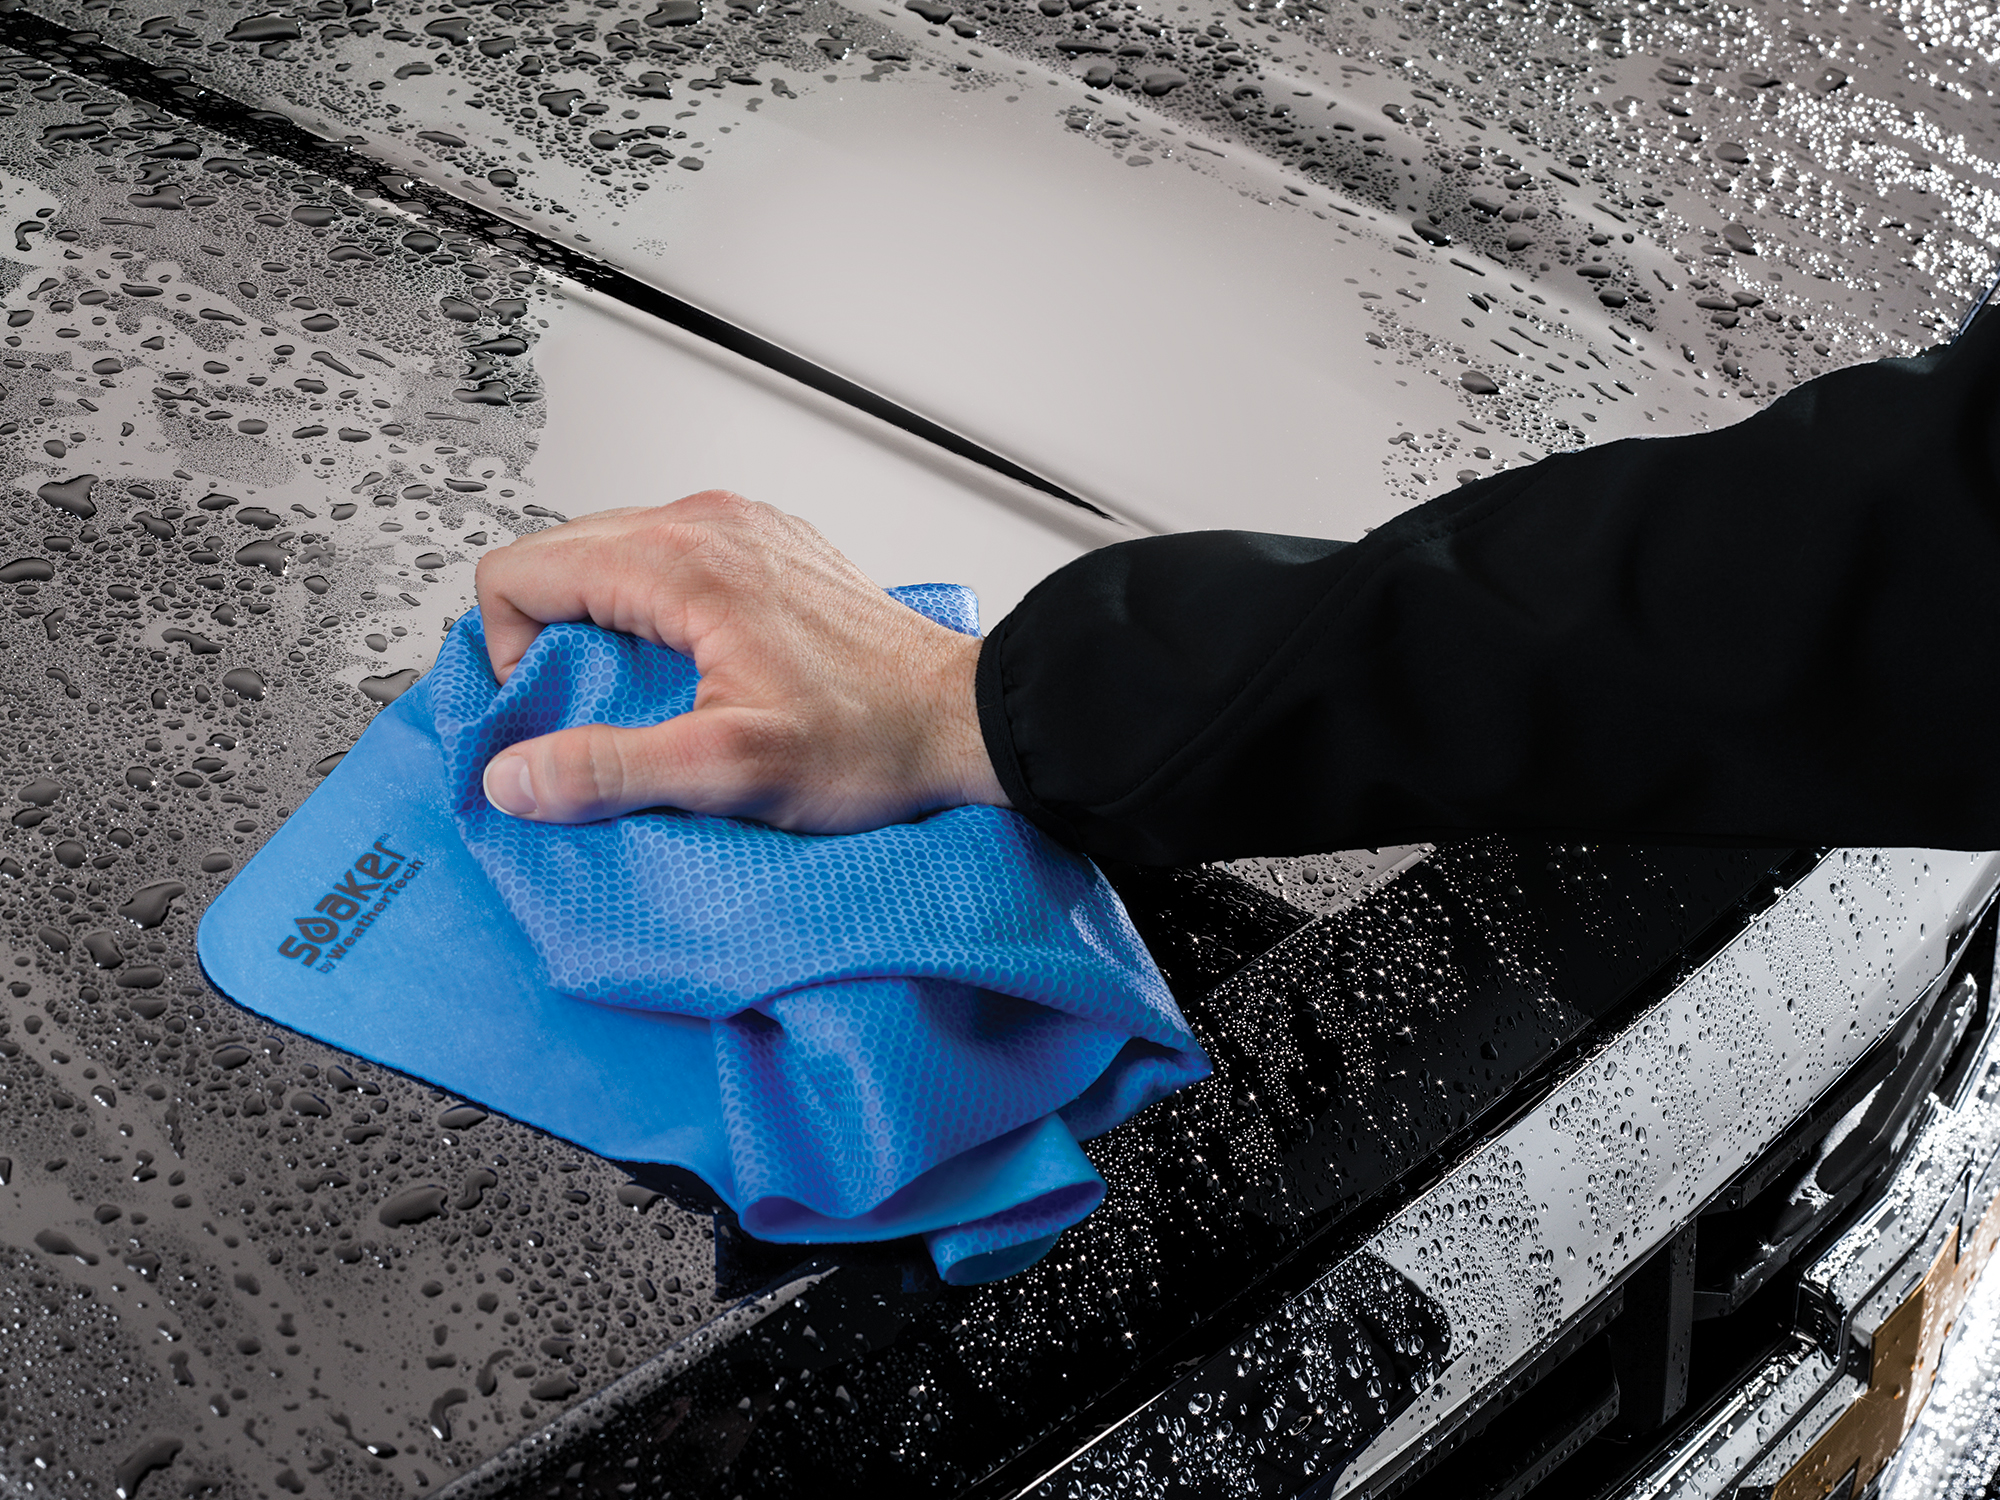 Weathertech mats cleaner - Chamois The Weathertech Soaker Chamois Is The Best Way To Dry Almost Anything